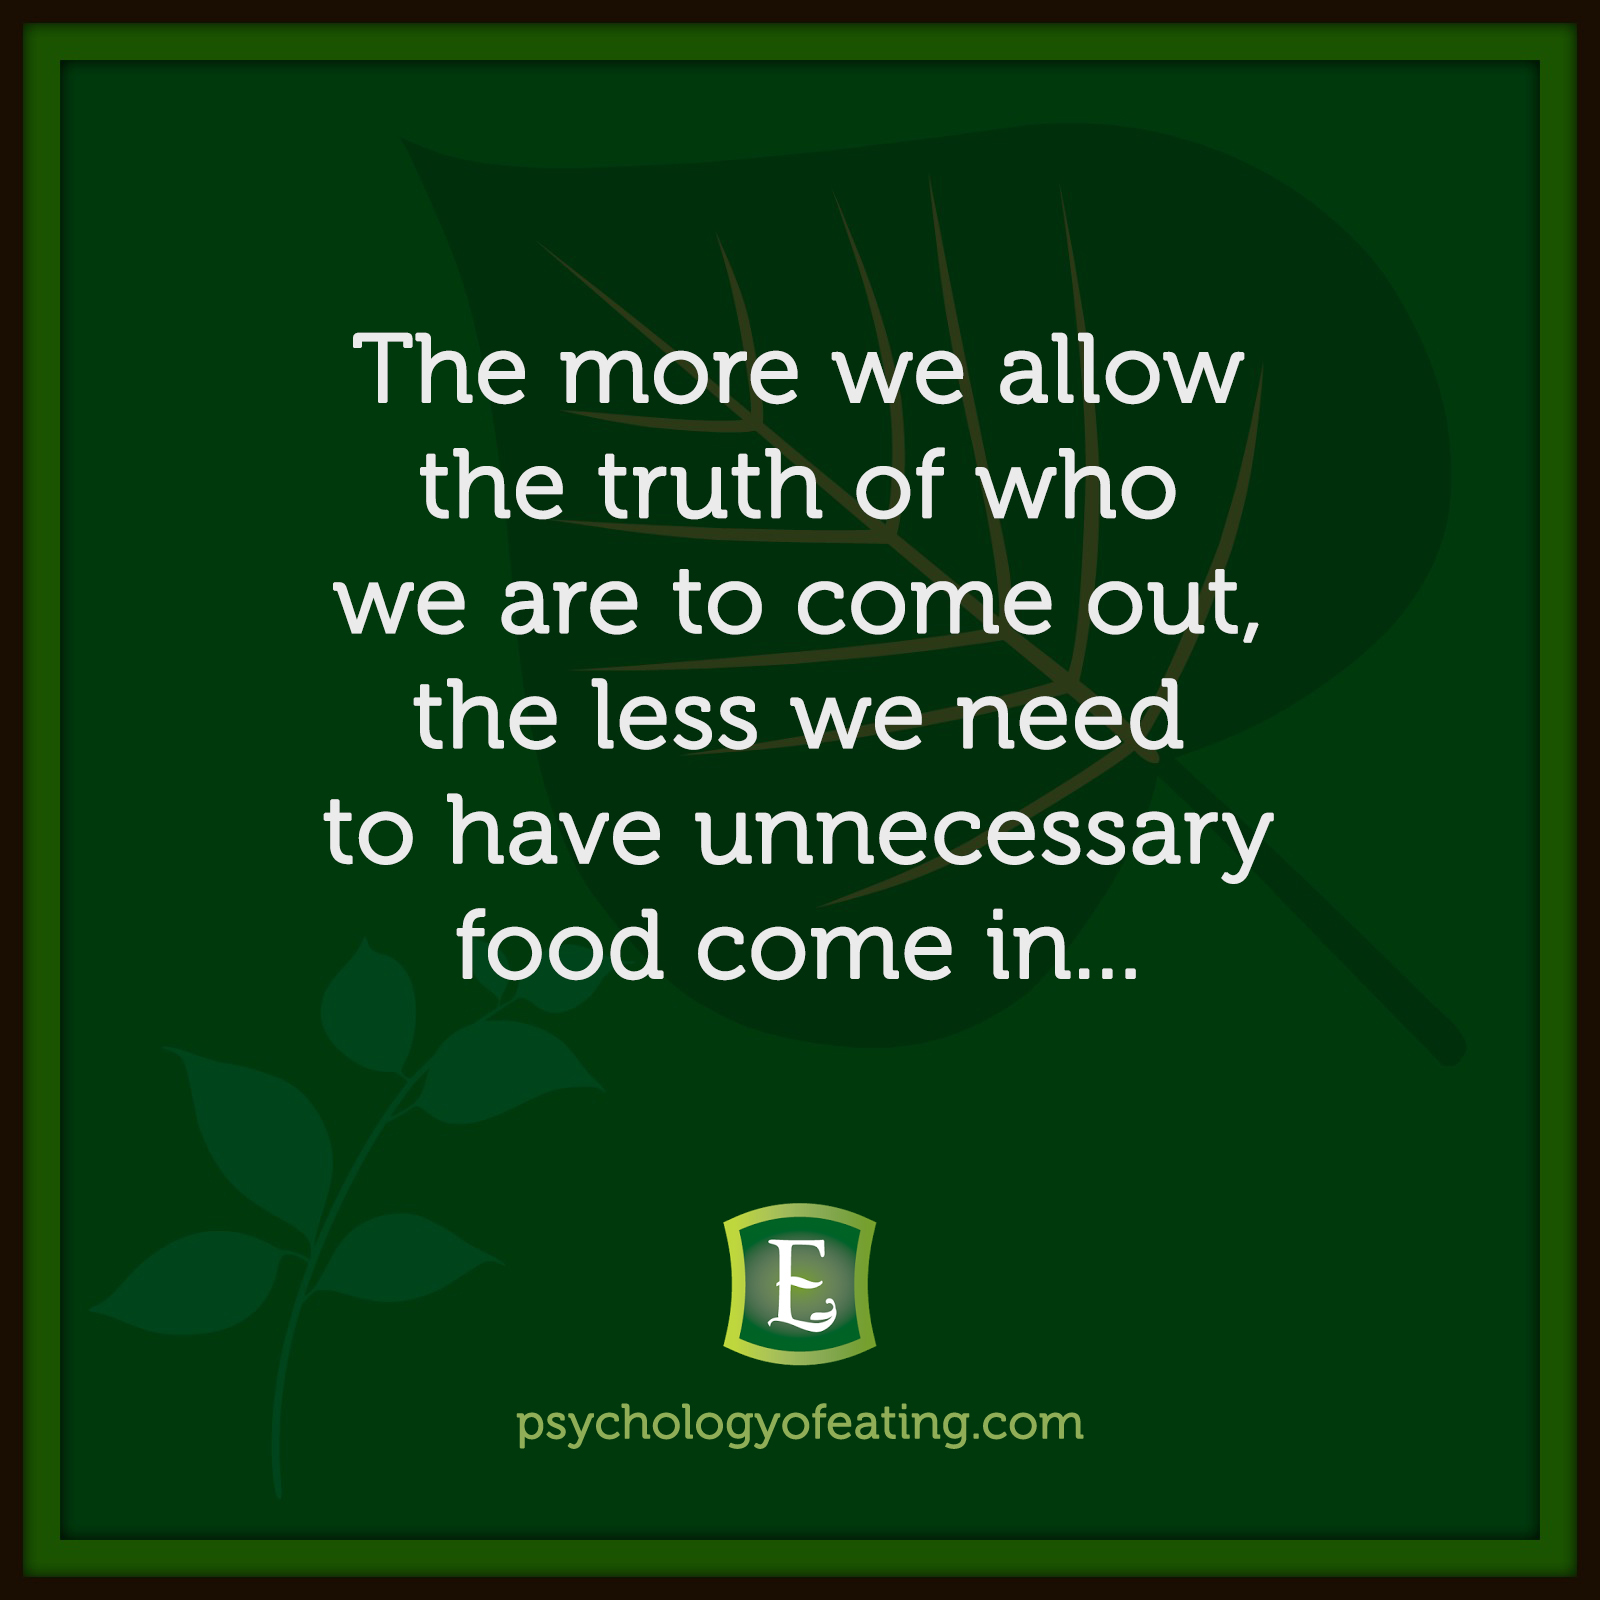 The more we allow the truth of who we are to come out, the less we need to have unnecessary food come in… #health #nutrition #eatingpsychology #IPE